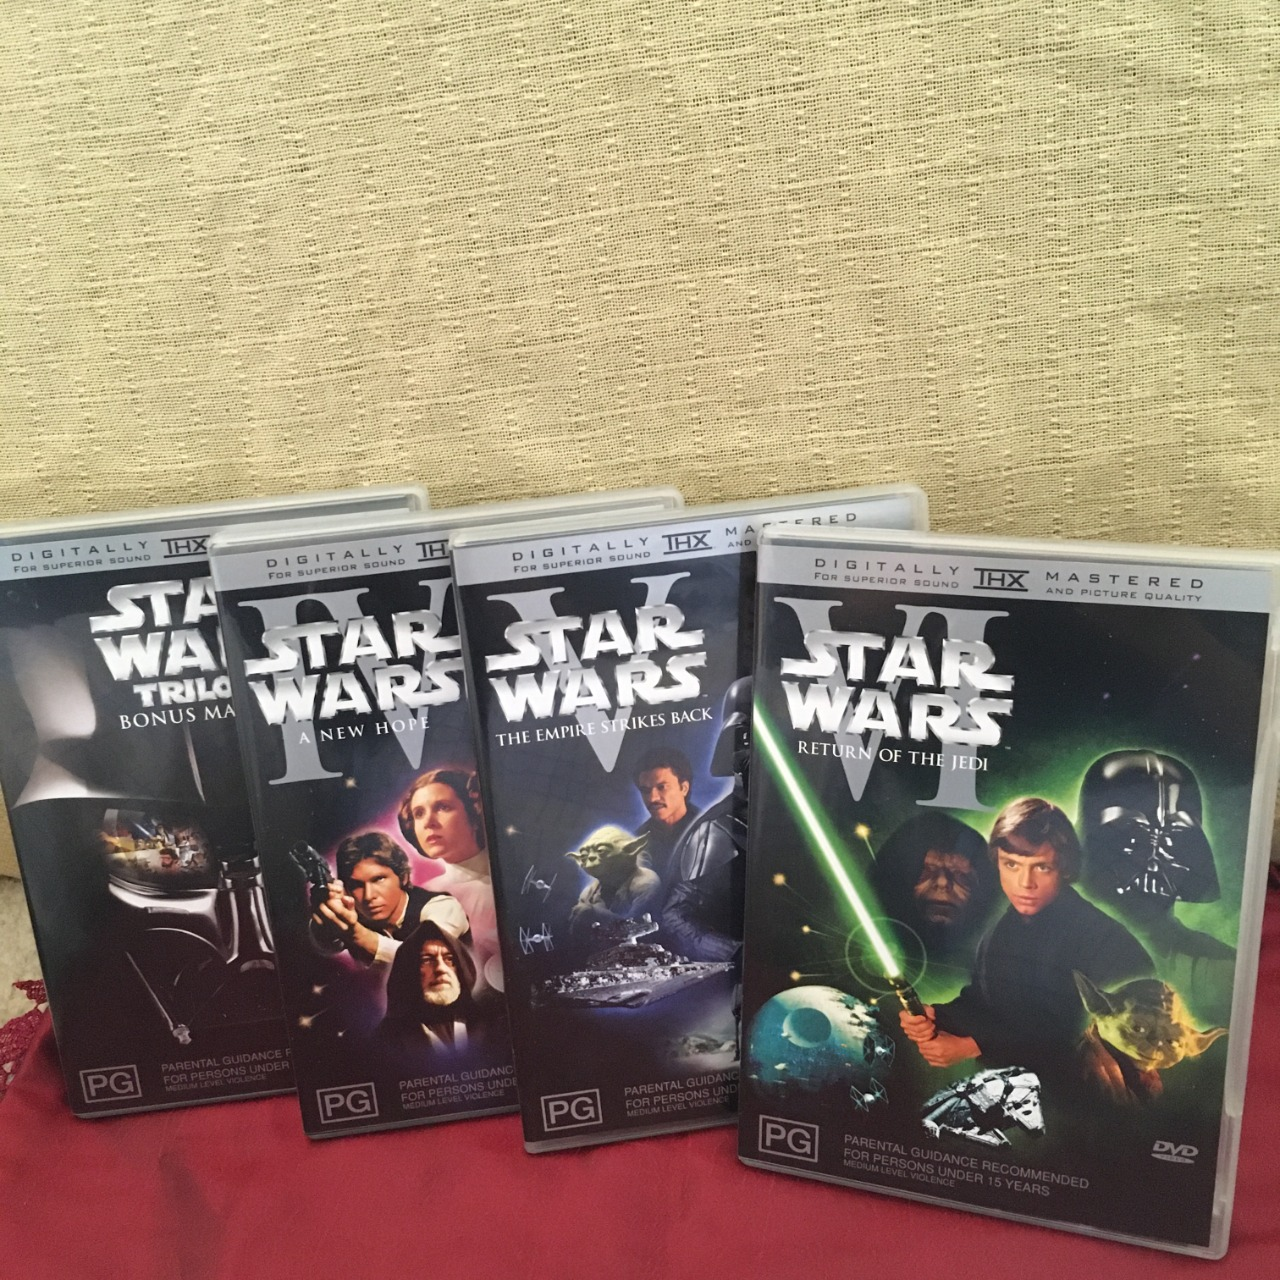 Star Wars Trilogy Boxed DVD Set - 4 Disc Region Code : 4/PAL